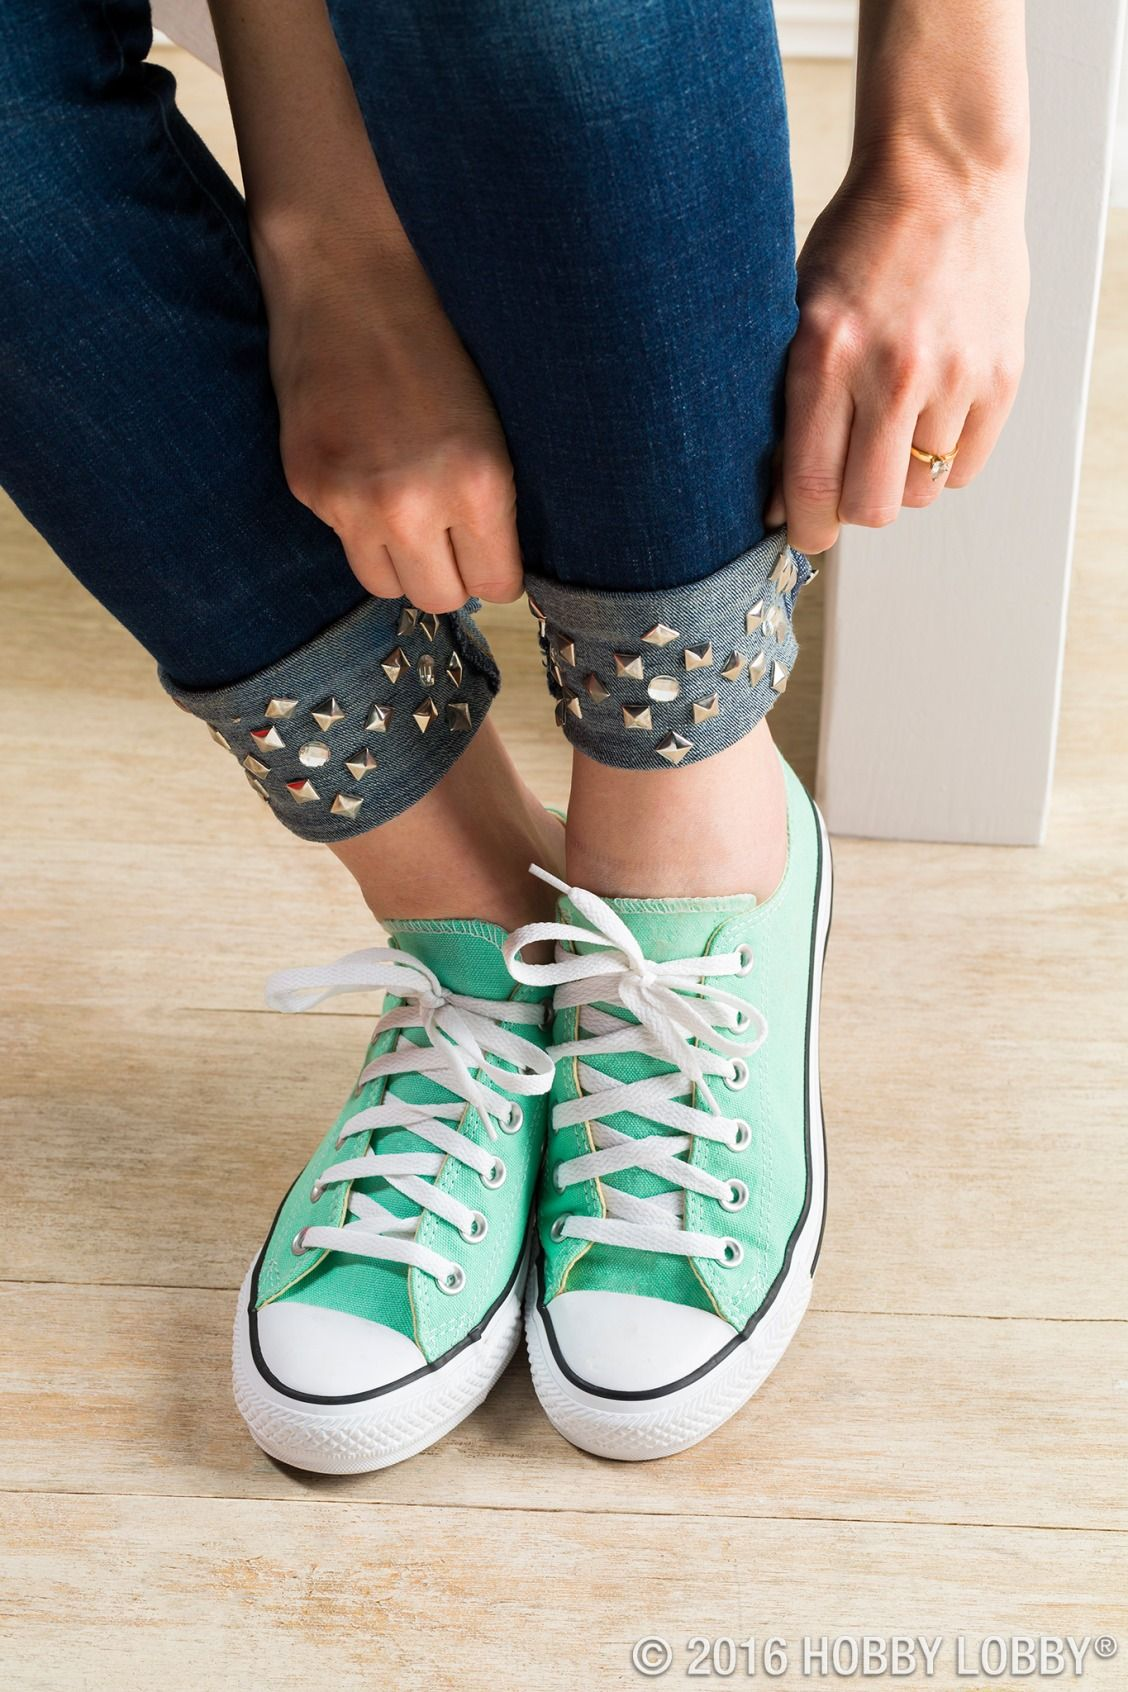 Make a statement with metal studs! They are great for thick fabrics, like denim.